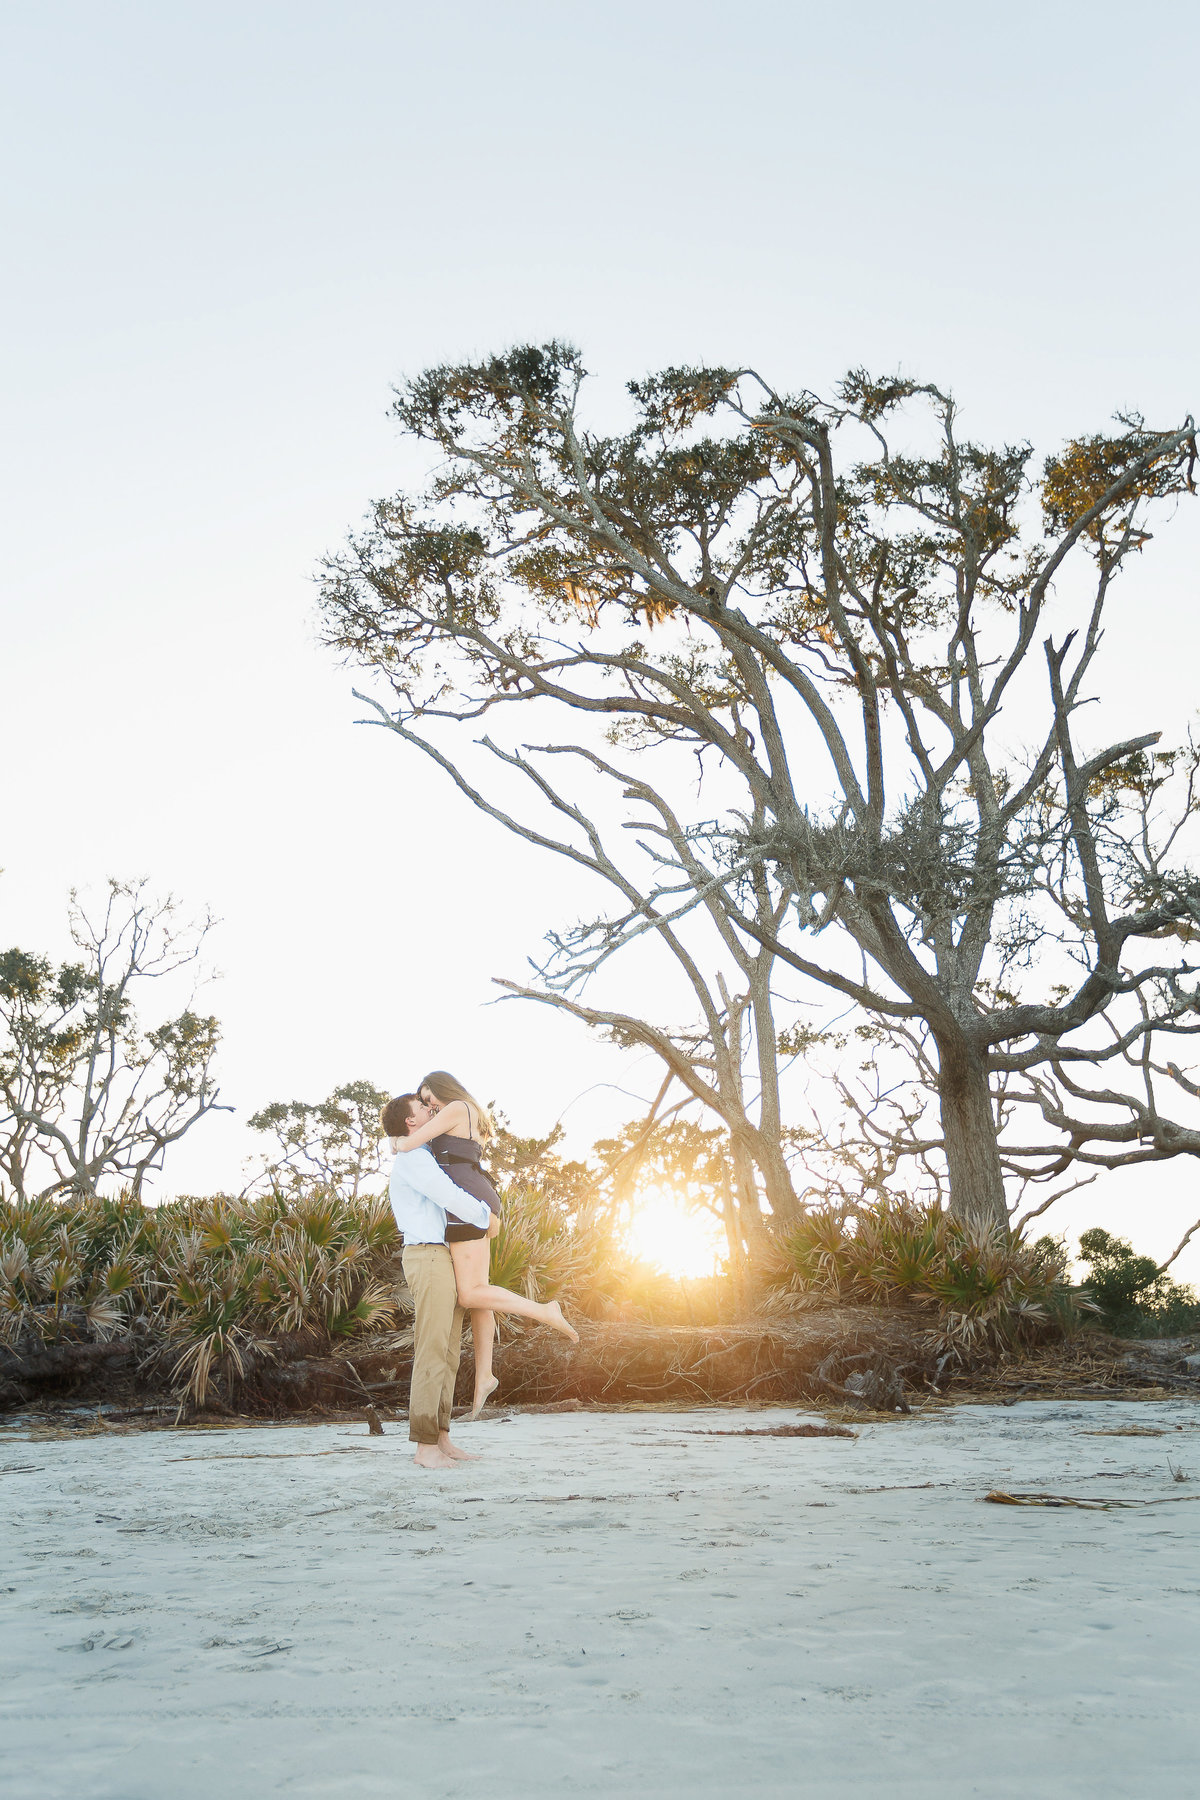 Jekyll-Island-Georgia-Engagement-Session-Jessica-Lea-IMG-0141